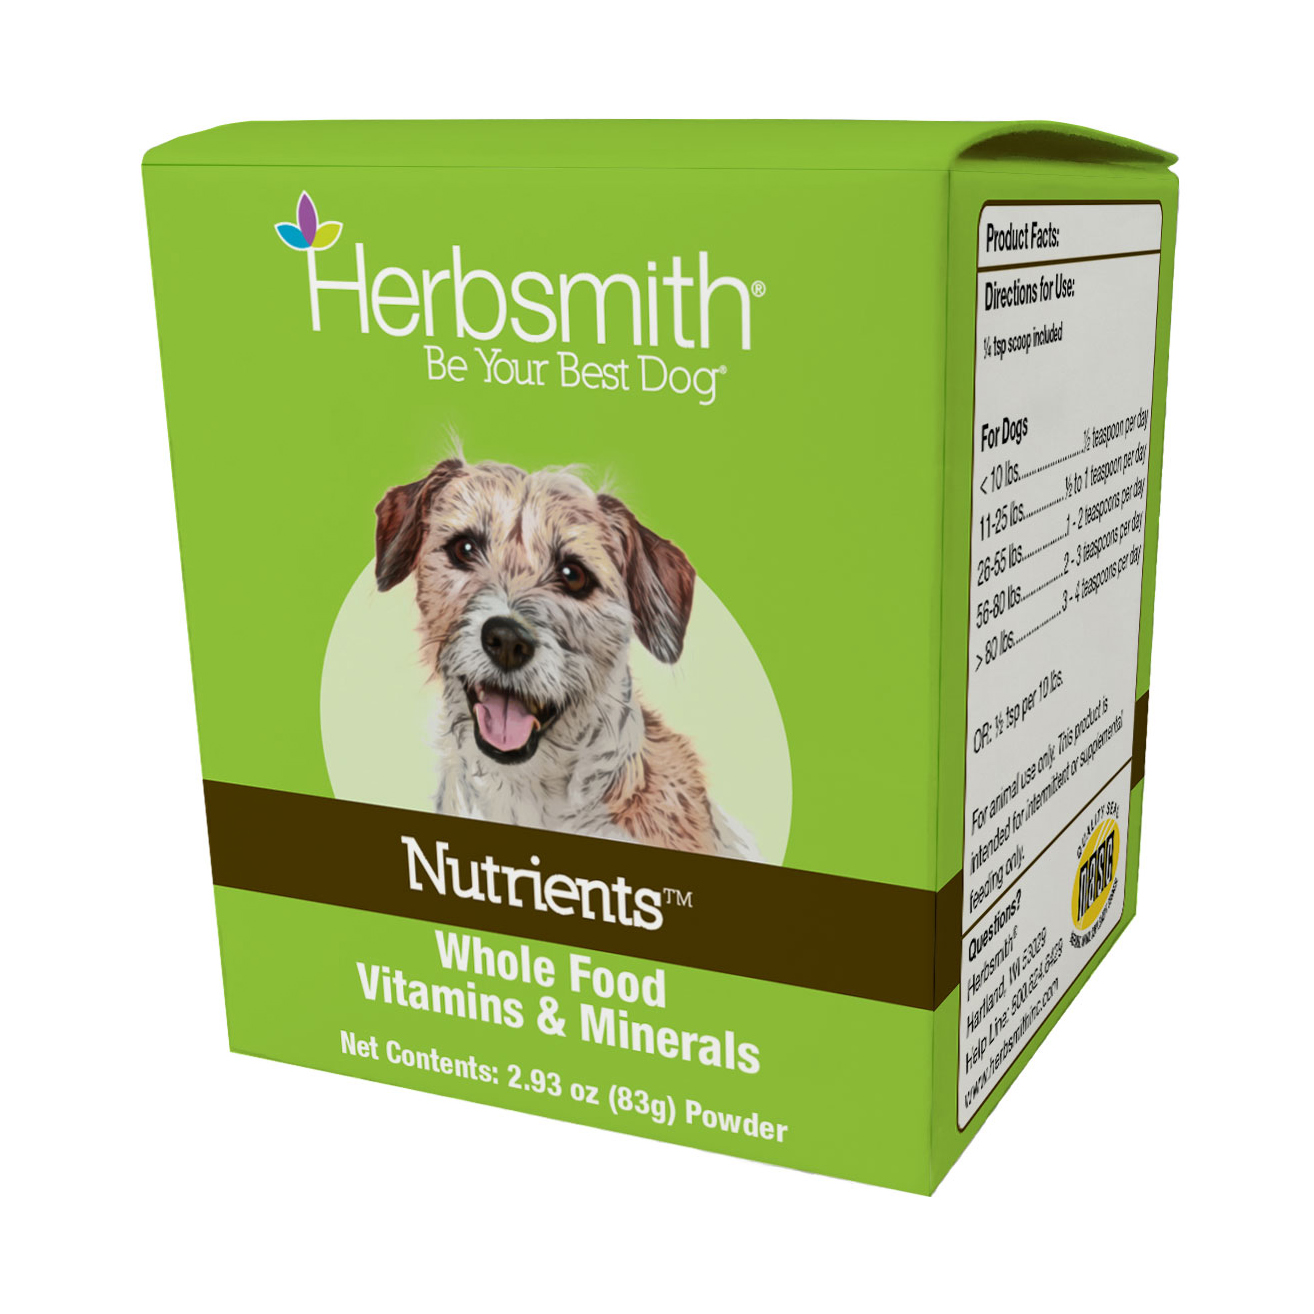 HerbsmithNutrients